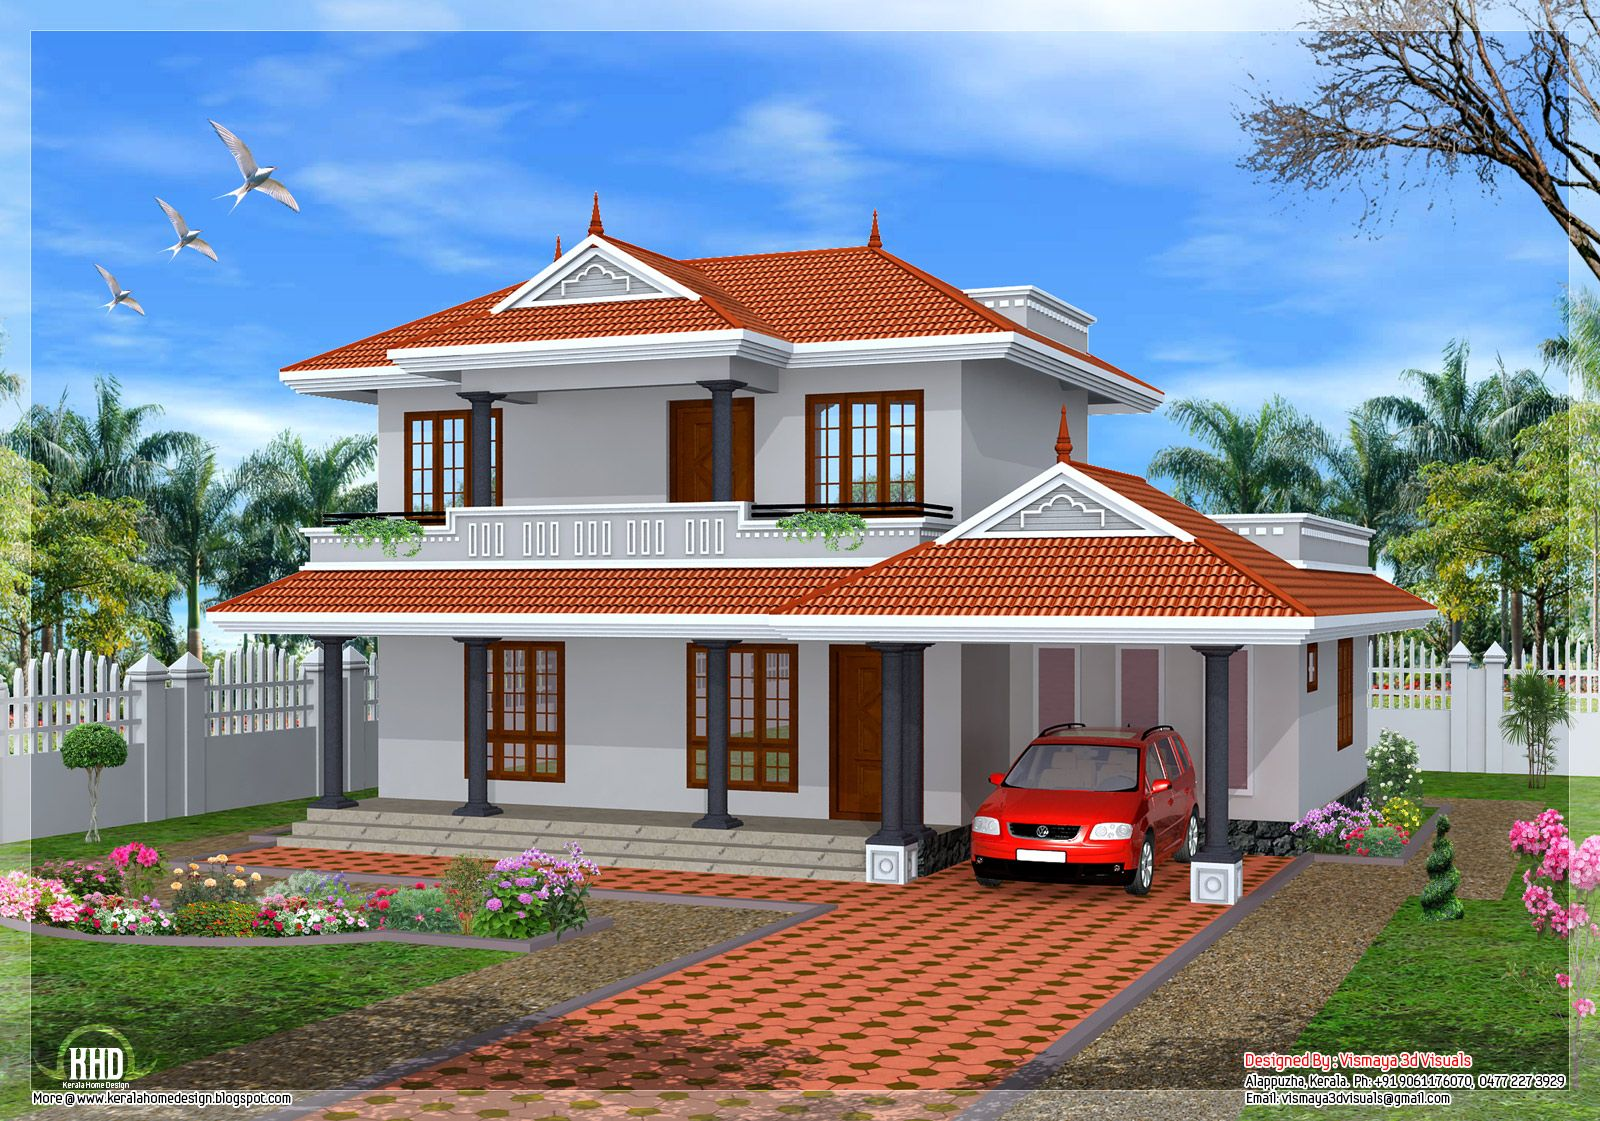 house architectural design house plans - House Plans Designs